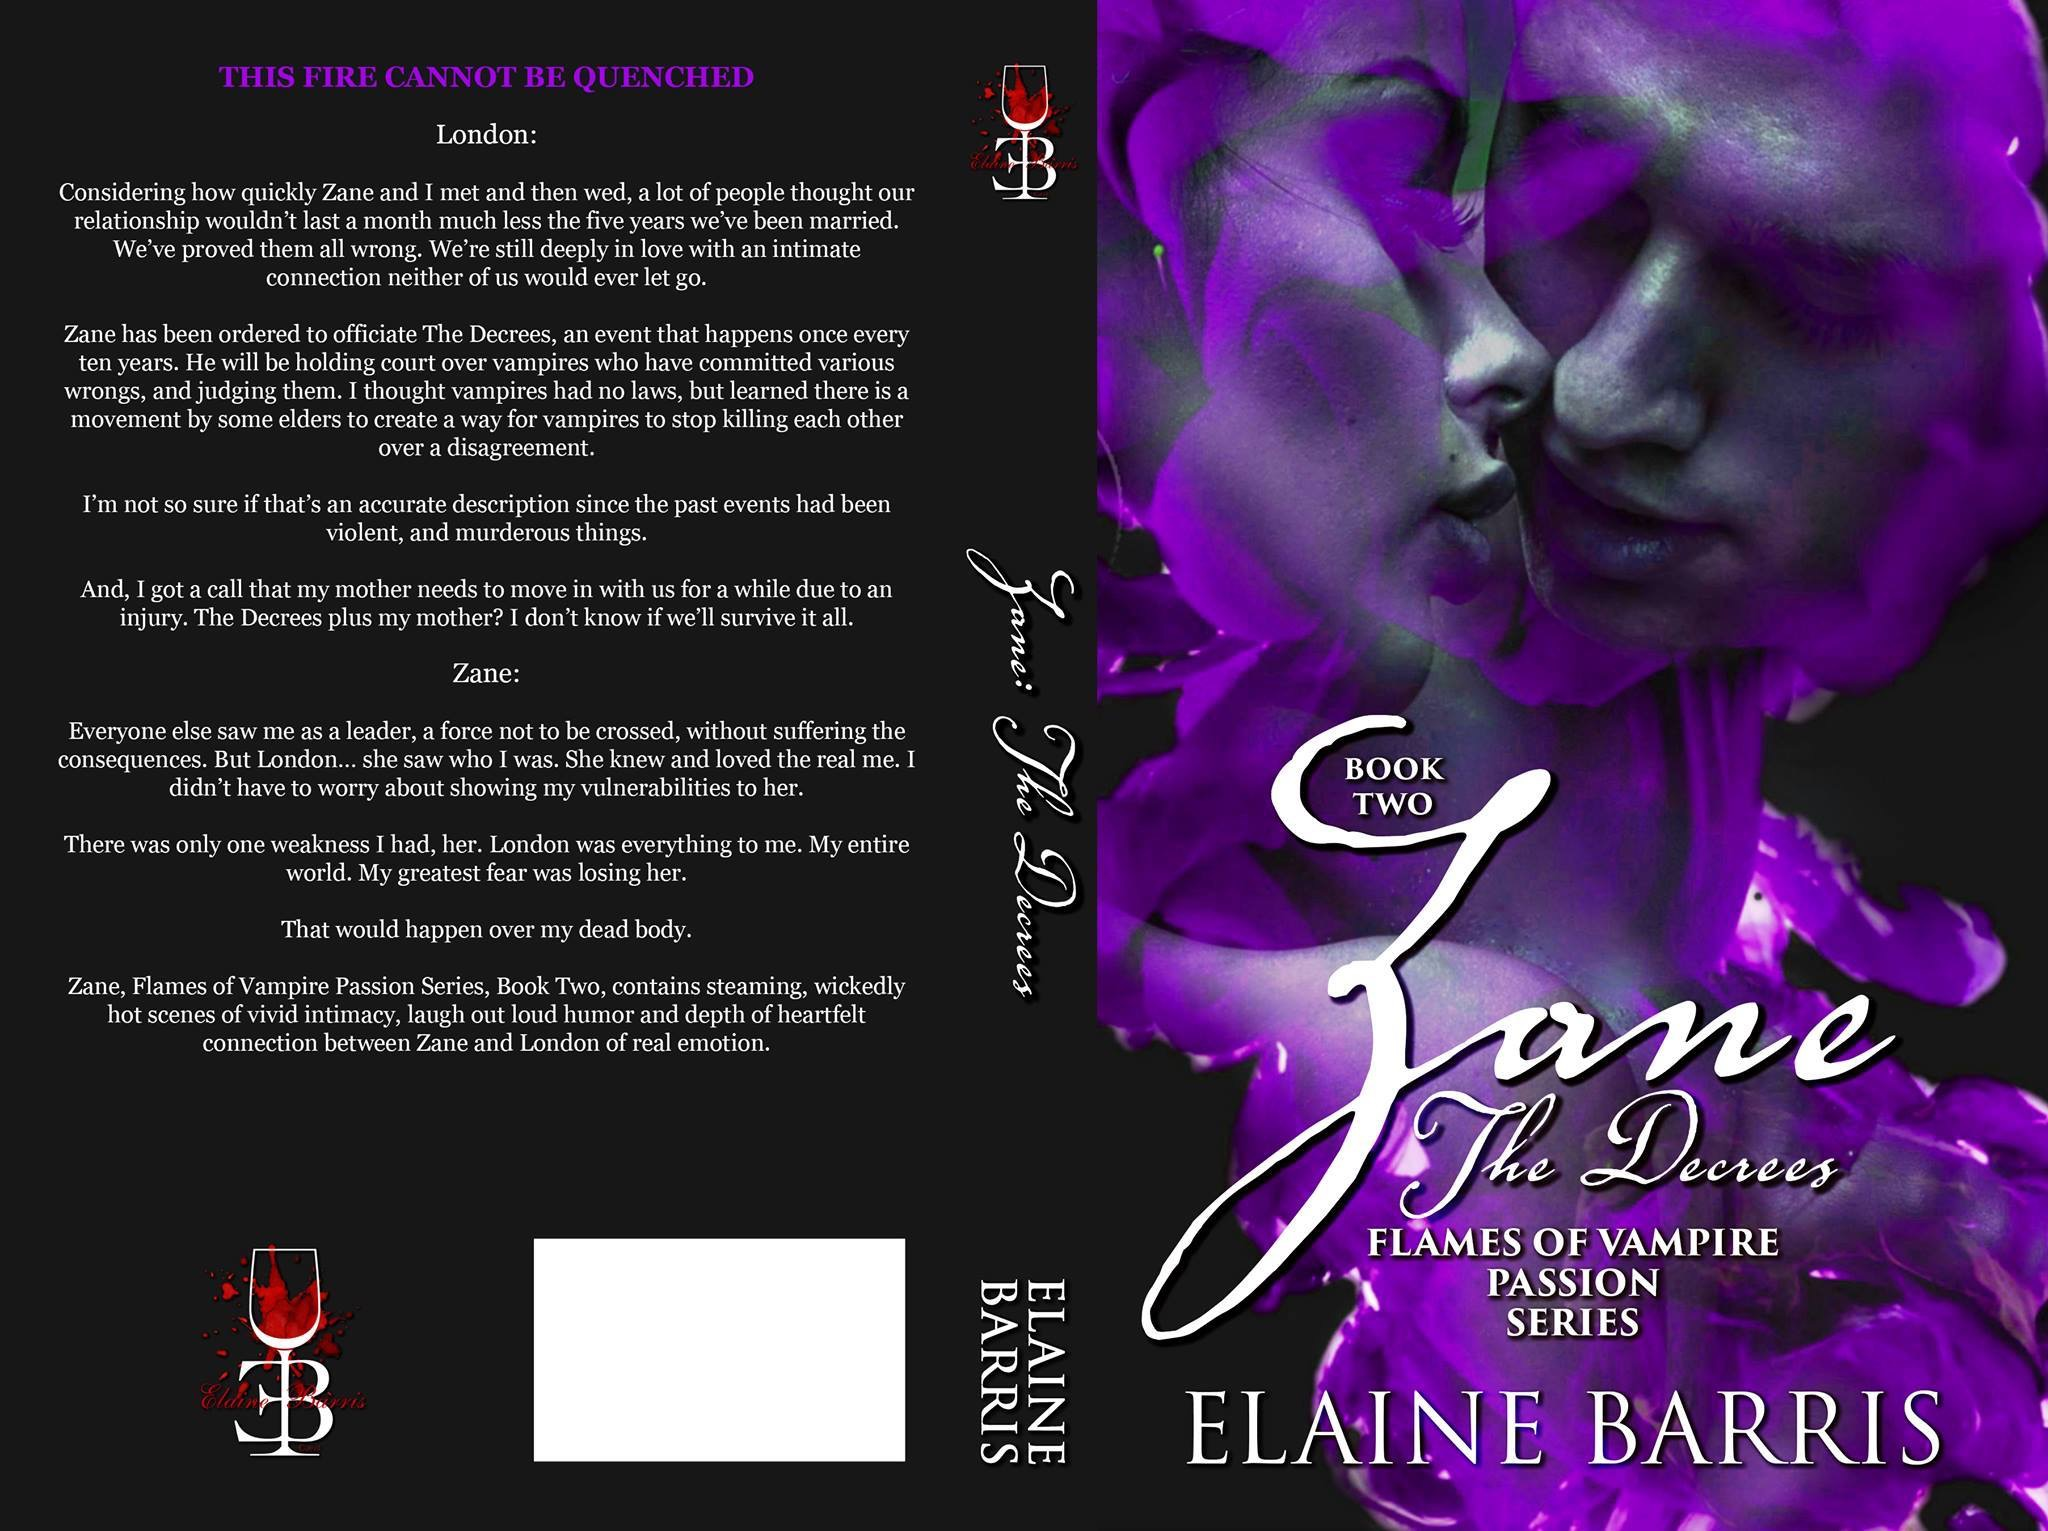 Barris Offer Porno my interview with author elaine barris❤️ – my books-my world